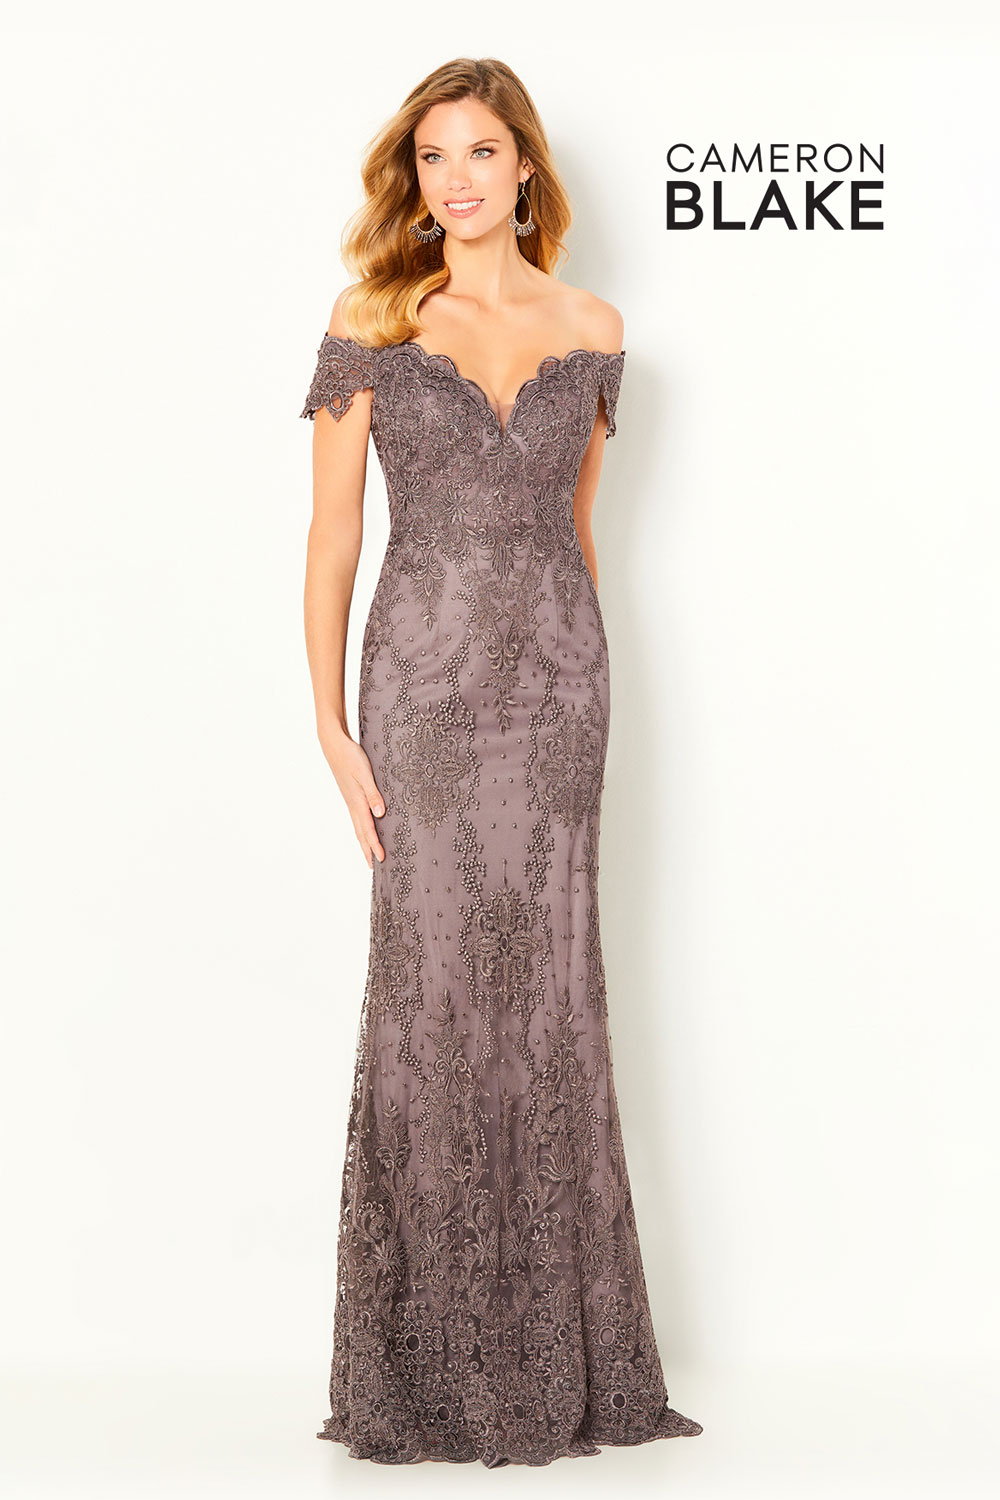 Gown with a V-neck, off the shoulder, shawl and separate sleeve